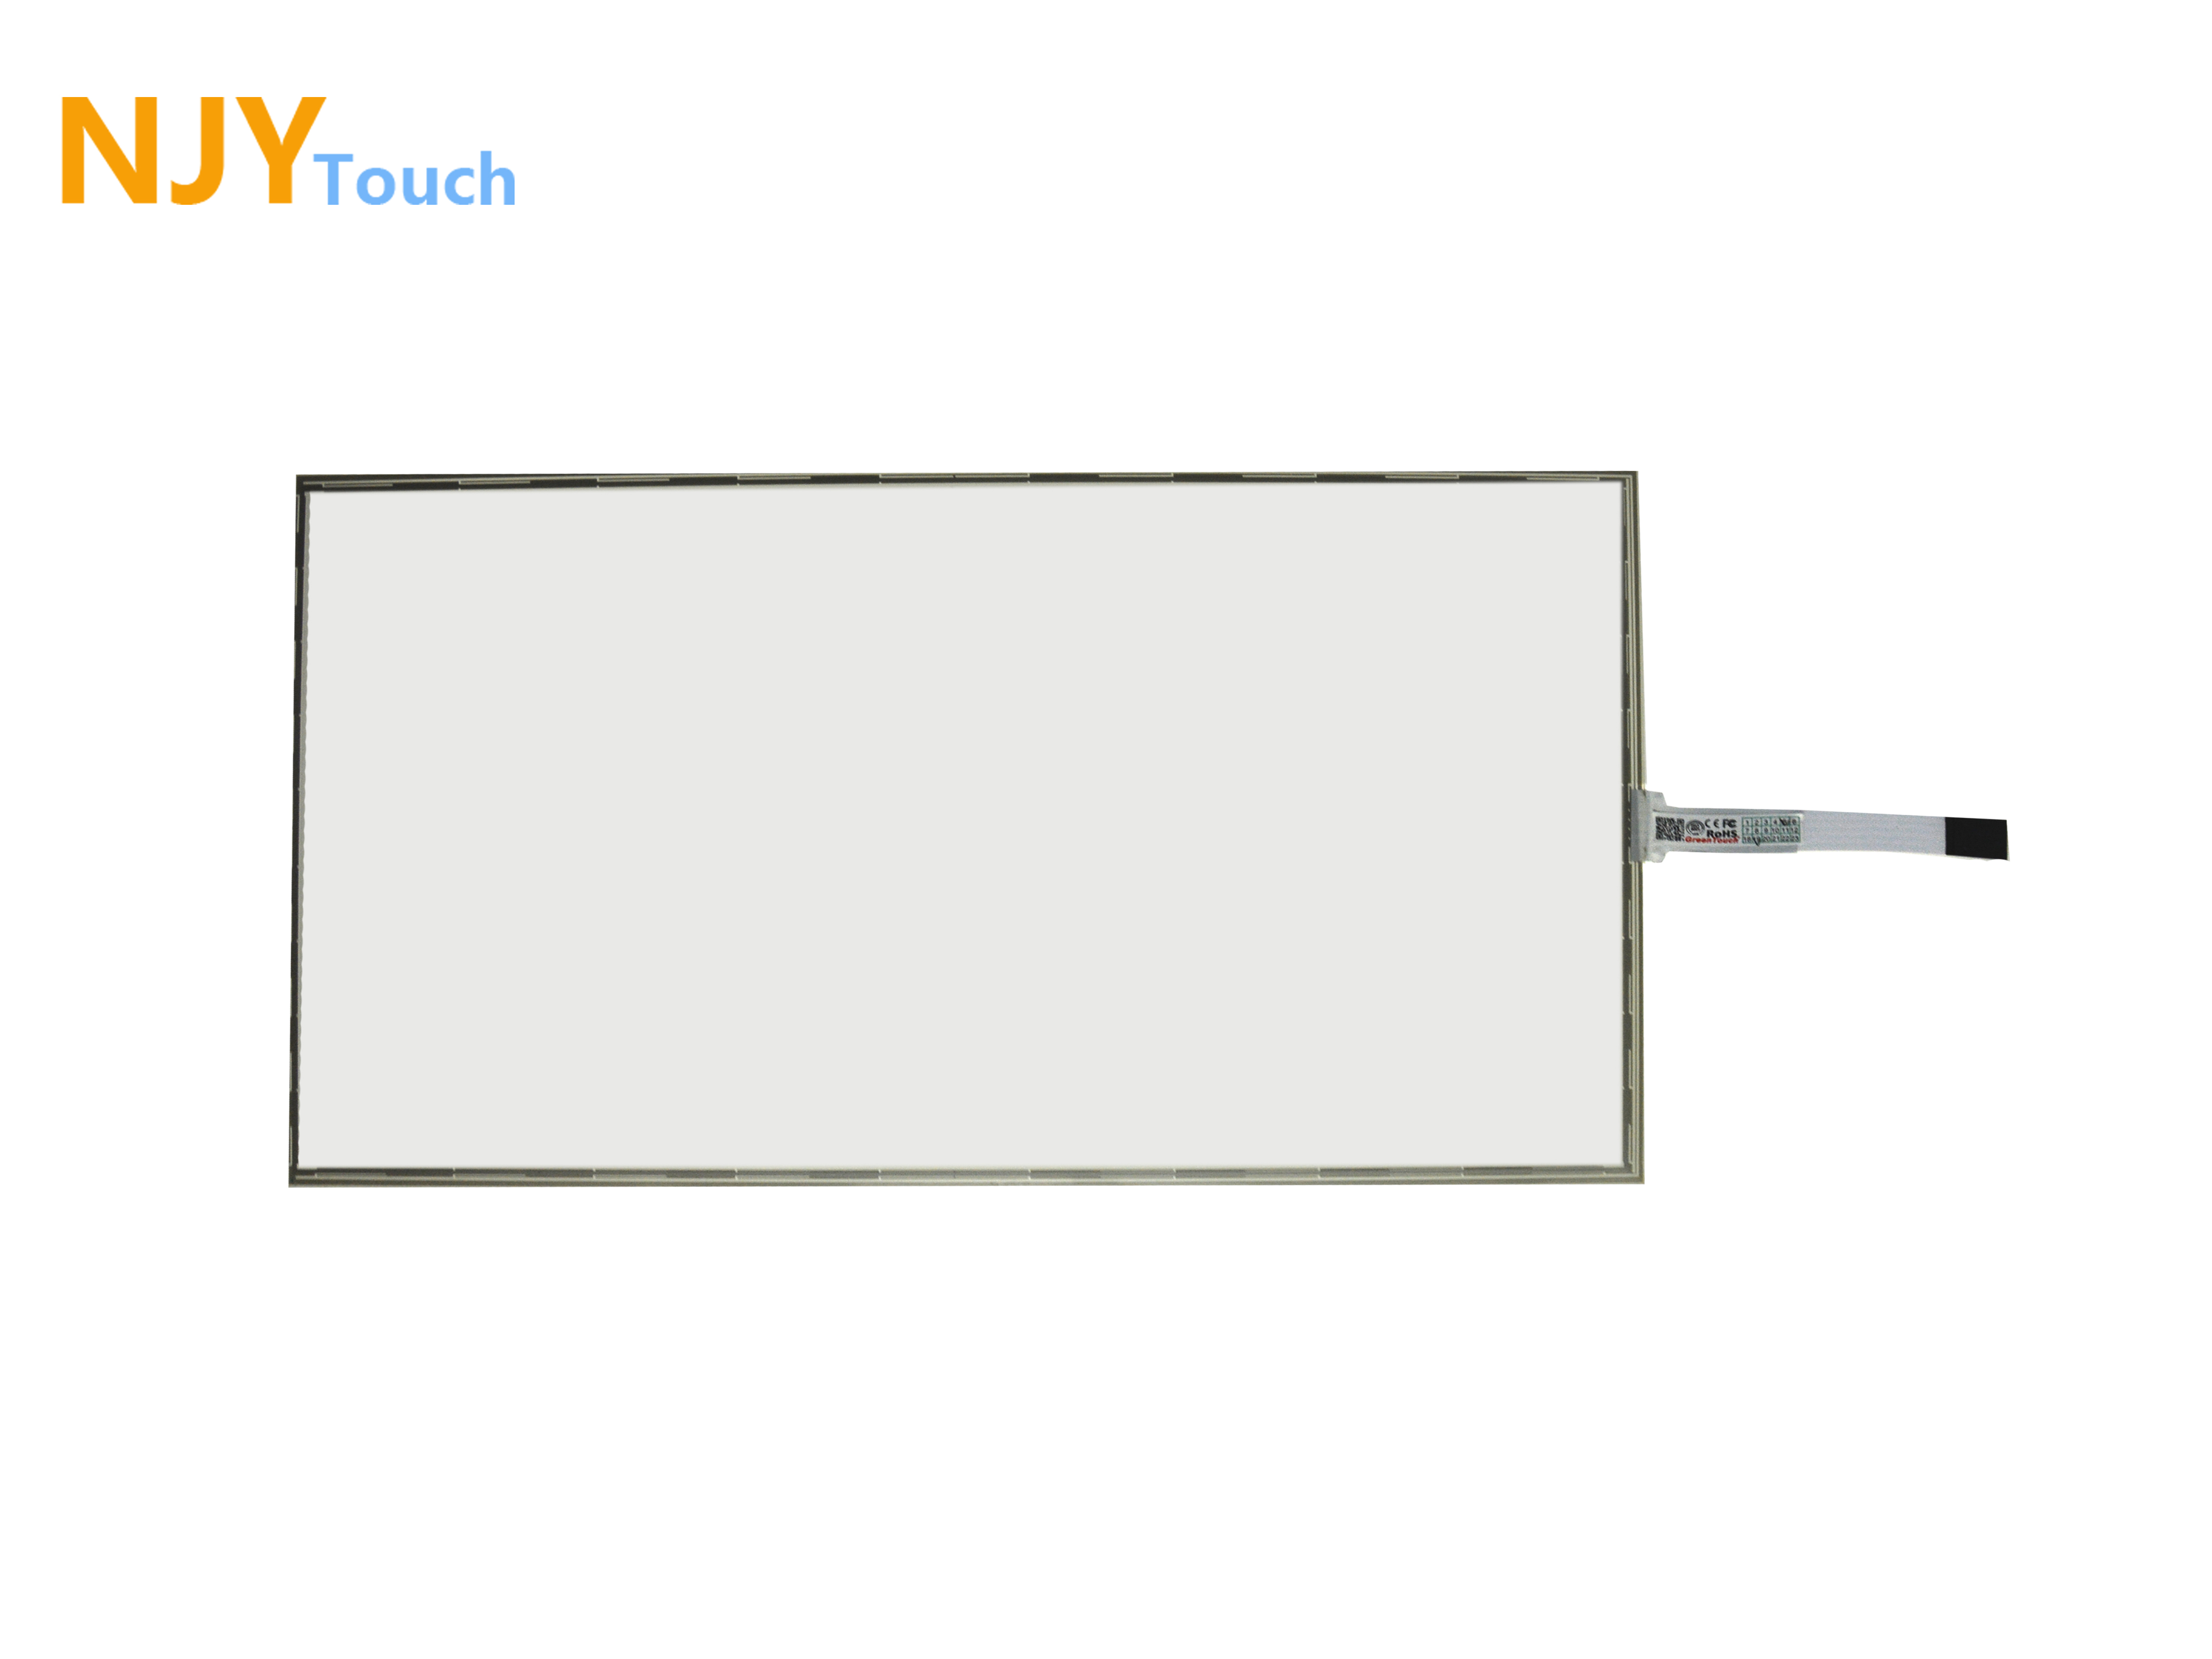 17.3inch 5 Wire Touch Panel 397 x 232mm USB Controller Card For 17.3 inch LCD Screen